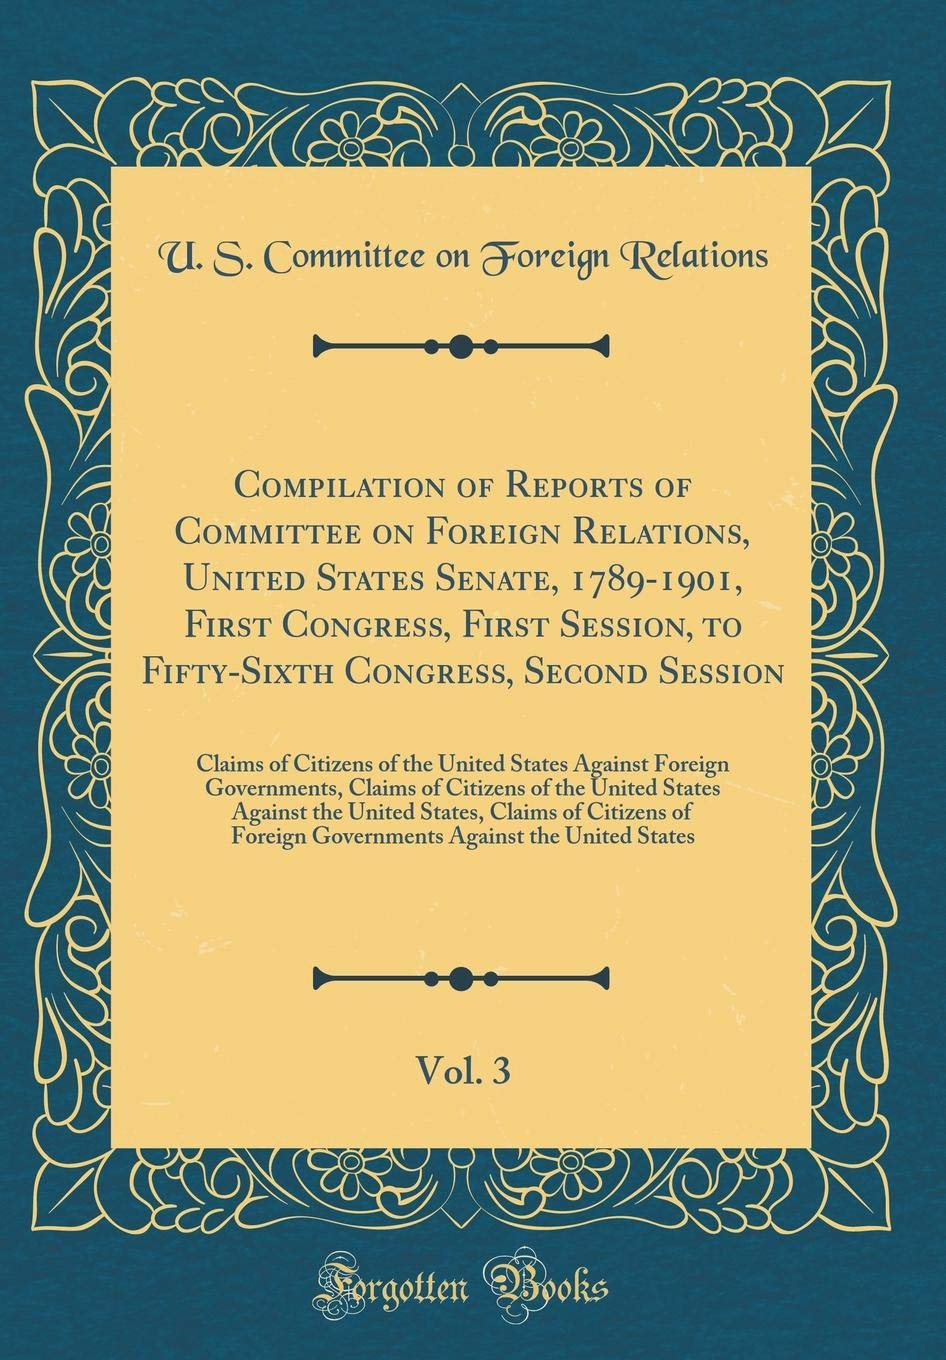 Compilation of Reports of Committee on Foreign Relations, United States Senate, 1789-1901, First Congress, First Session, to Fifty-Sixth Congress, ... Against Foreign Governments, Claims of Citiz pdf